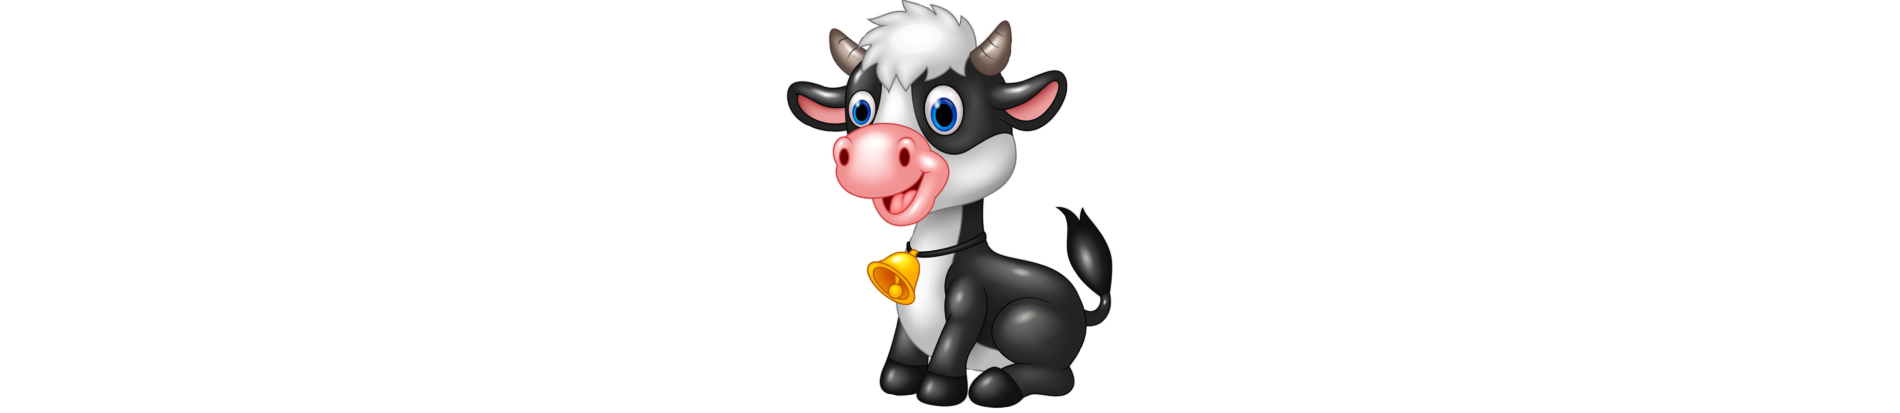 Moms cows services with. Coupon clipart house cleaning